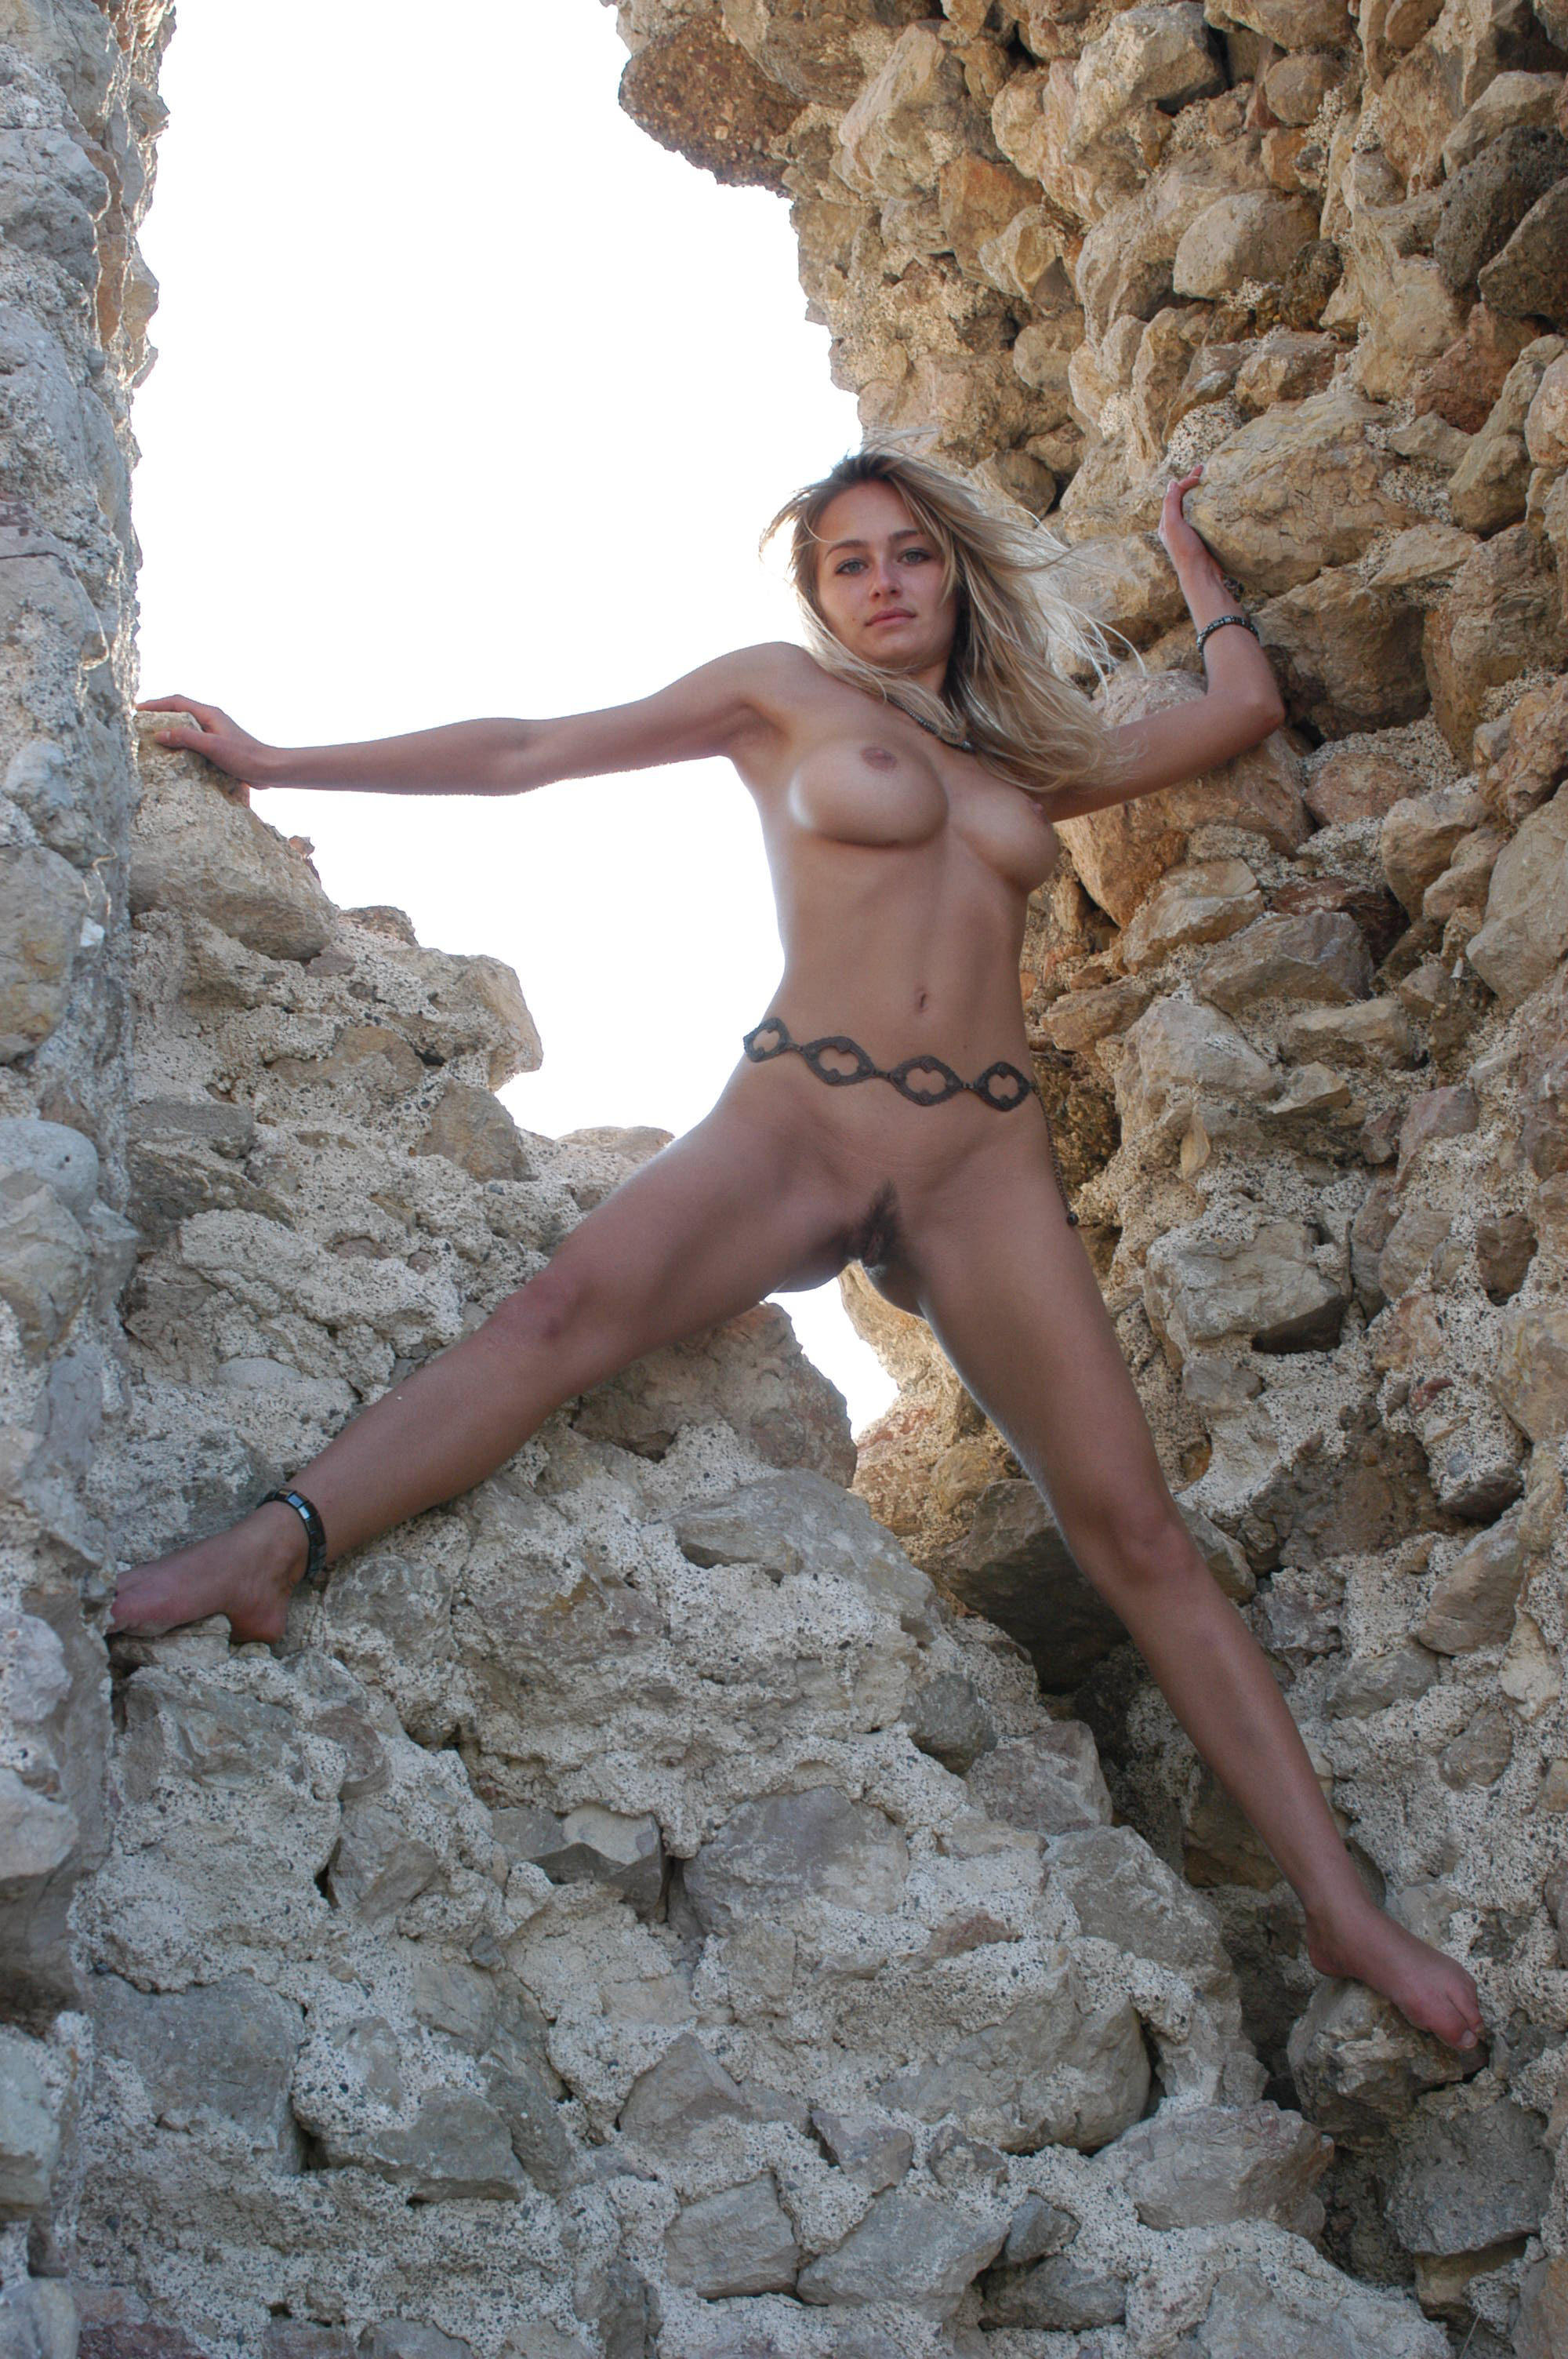 Athletic goddess naked spread eagle on rocks